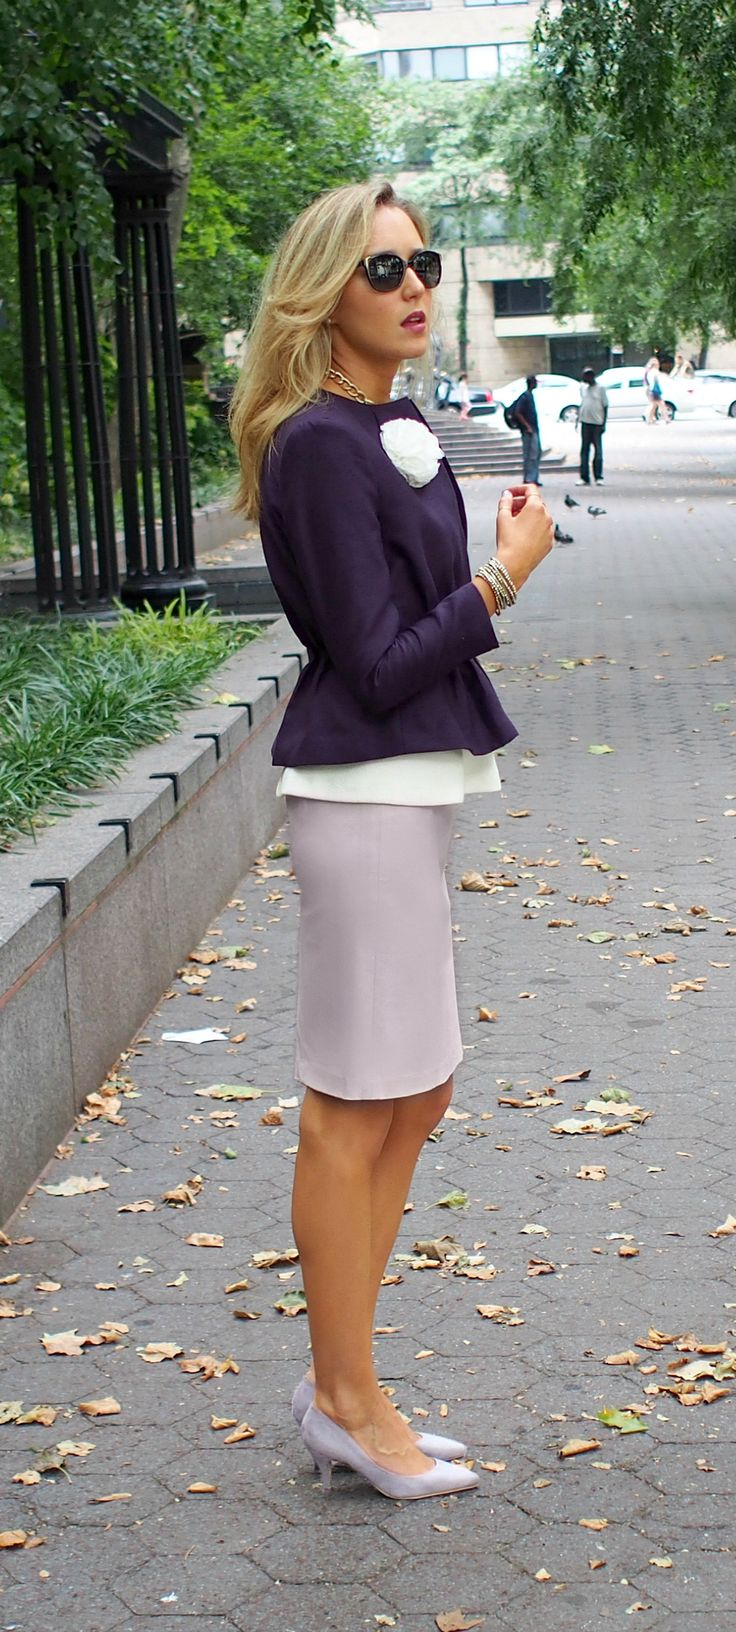 169 Best Corporate Outfits Images On Pinterest